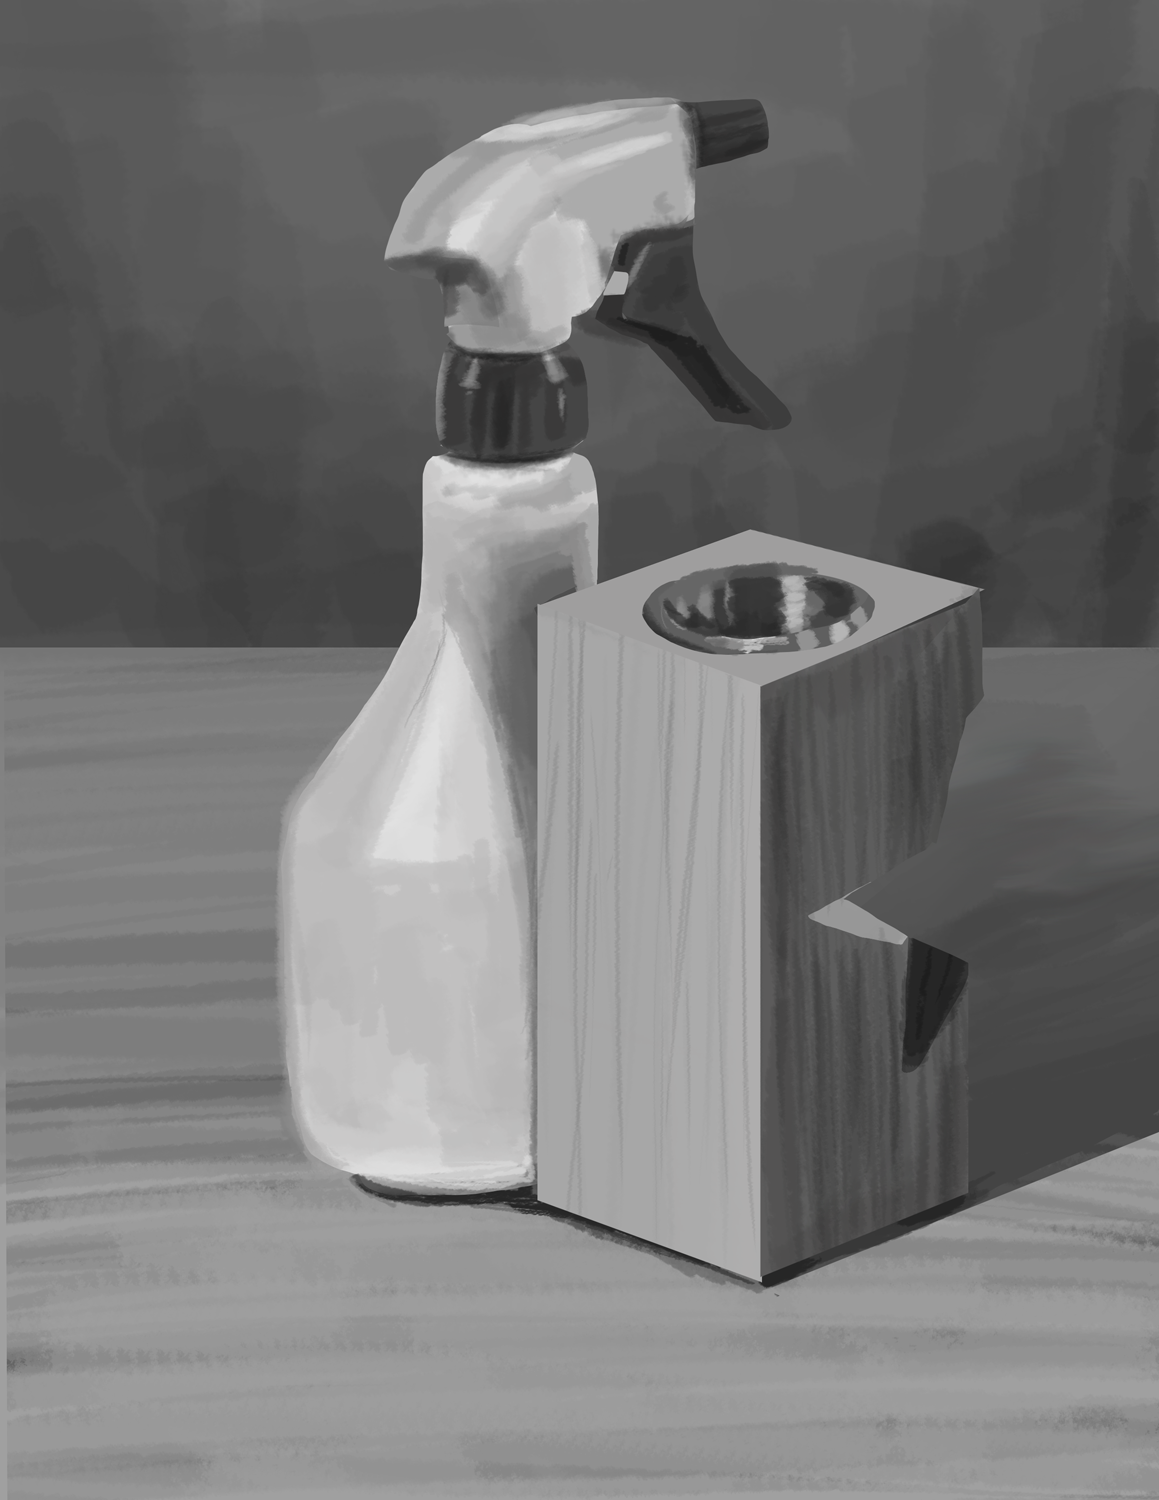 3-Spray-bottle-and-candlestick.png